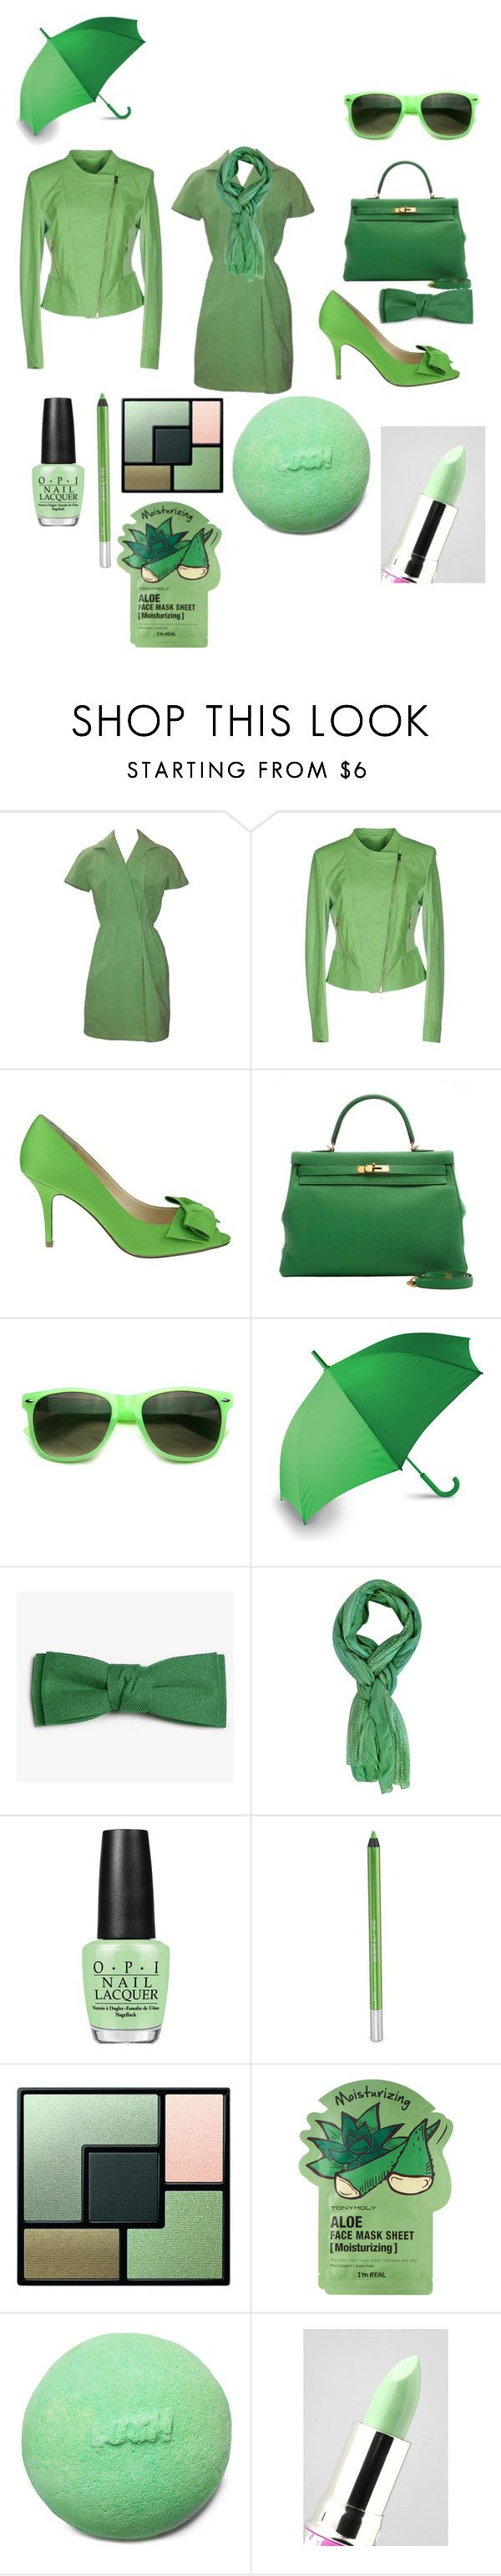 """""""Kelly Green"""" by krisalynj ❤ liked on Polyvore featuring KI6? Who Are You?, Lord & Taylor, LEXON, OPI, Urban Decay, Yves Saint Laurent, Tony Moly and Lime Crime"""